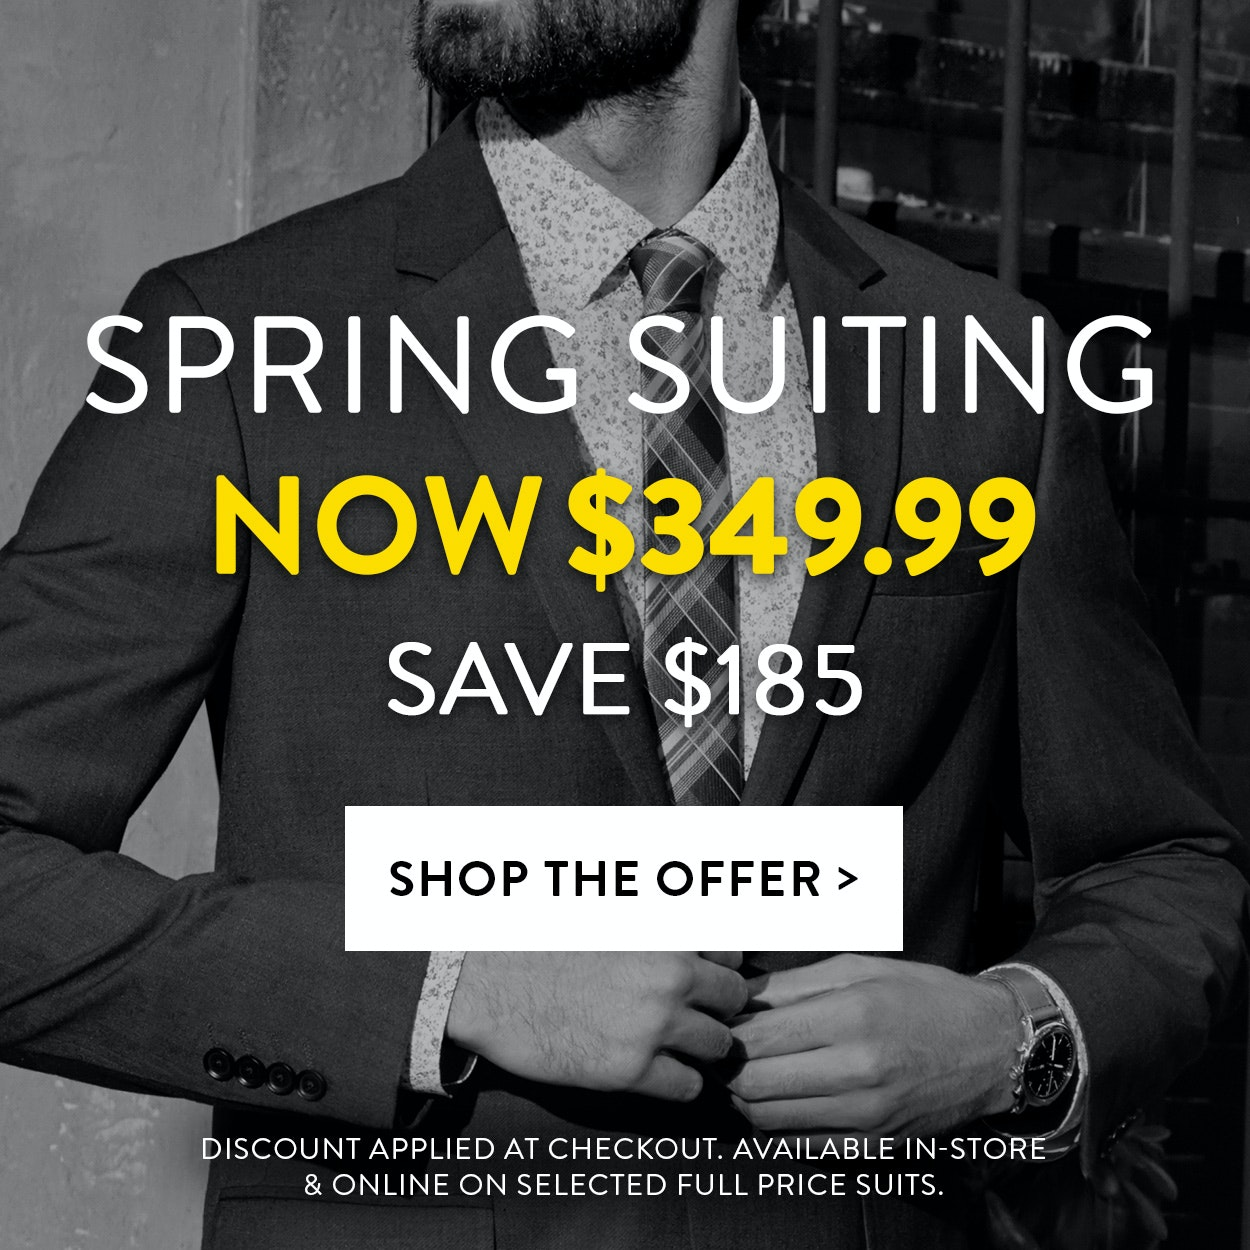 Spring Suiting - Suit, Shirt & Tie for $249.99